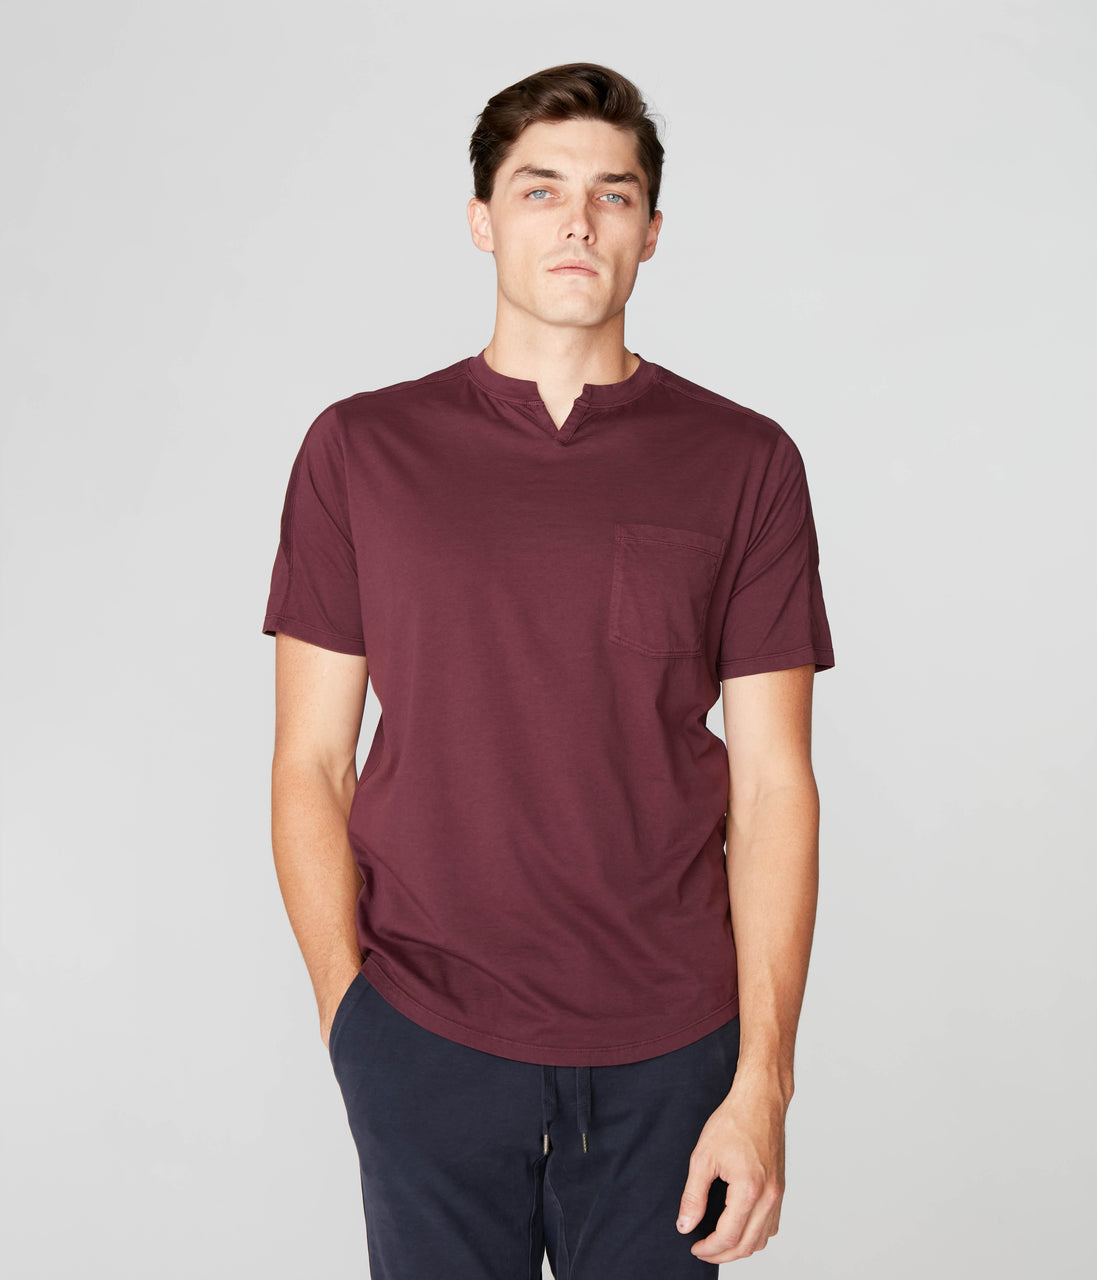 Premium Cotton Jersey Notch Neck Crew - Wine - Good Man Brand - Premium Cotton Jersey Notch Neck Crew - Wine